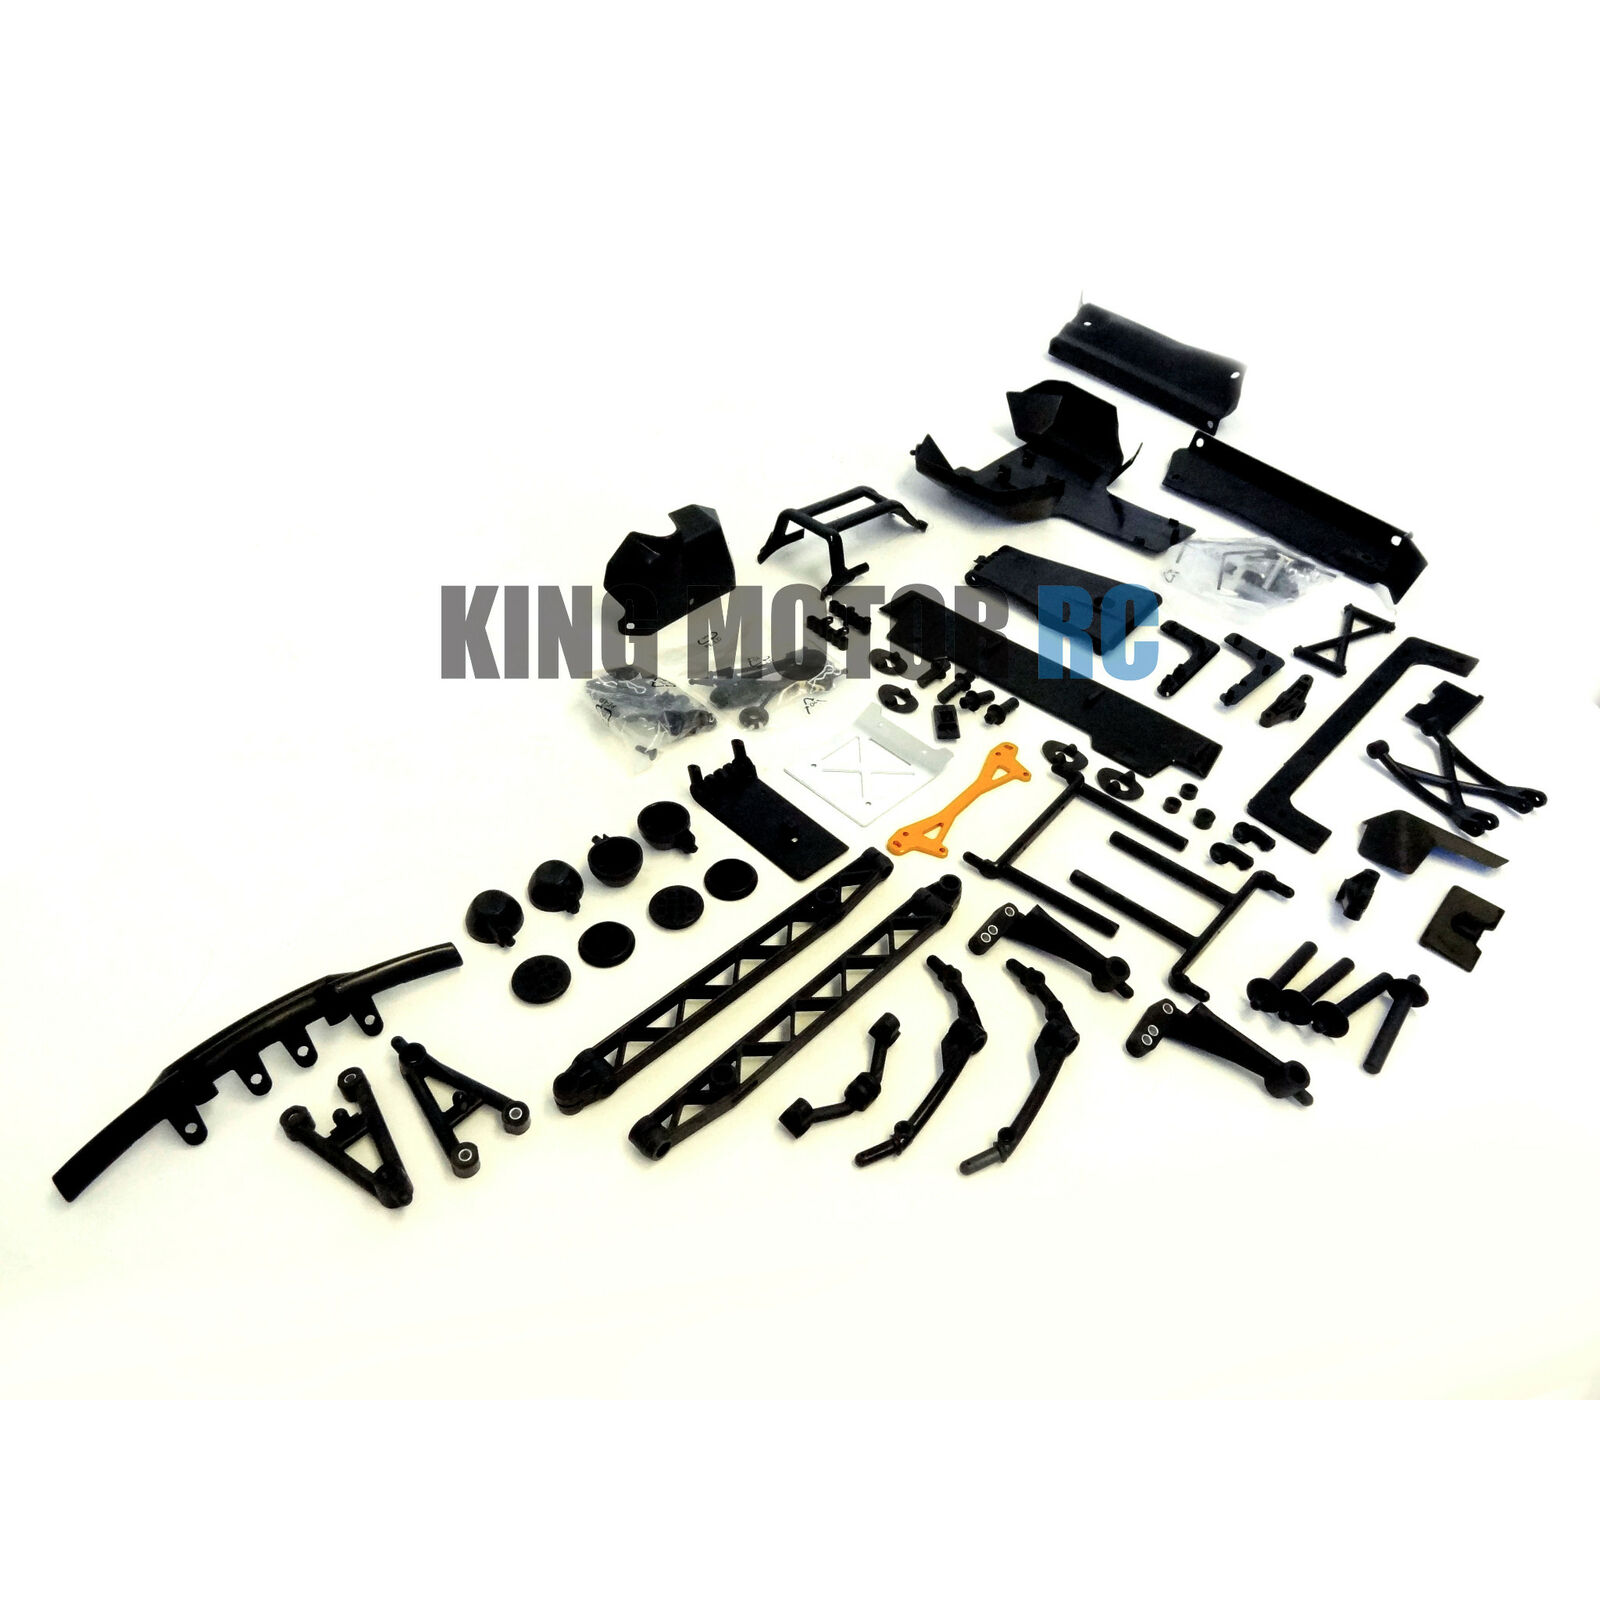 1//5 Scale Rovan HPI Baja 5B to 5T Buggy to Truck Conversion Kit King Motor